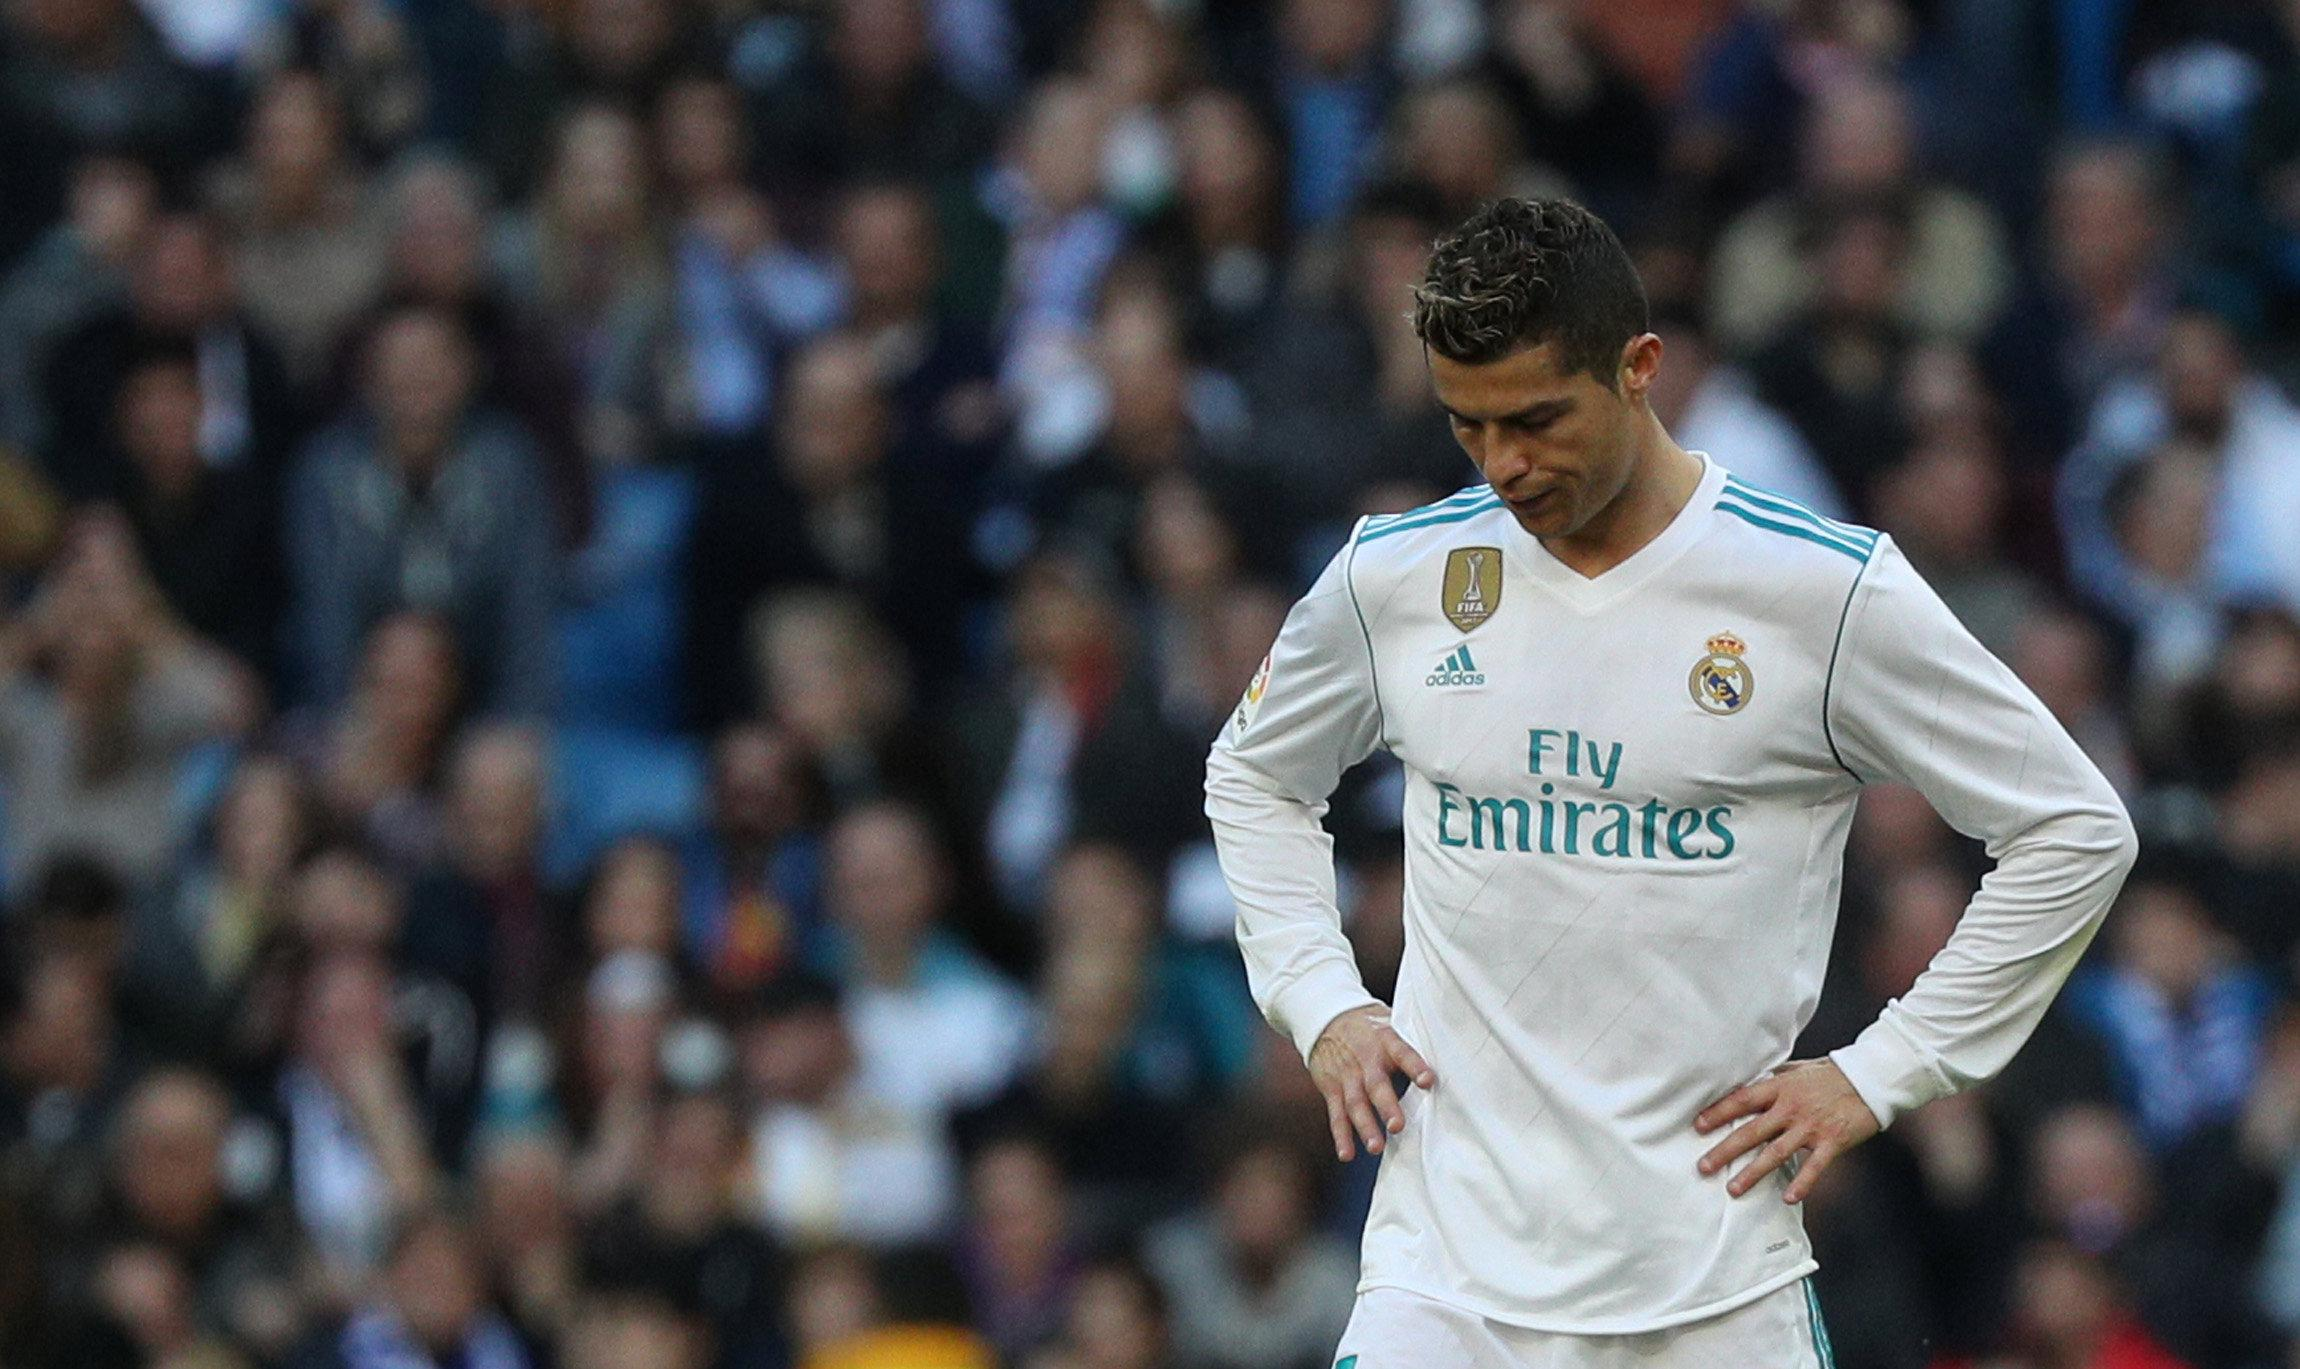 A recent poll concluded that over 60% of Real Madrid fans want Ronaldo to leave the club